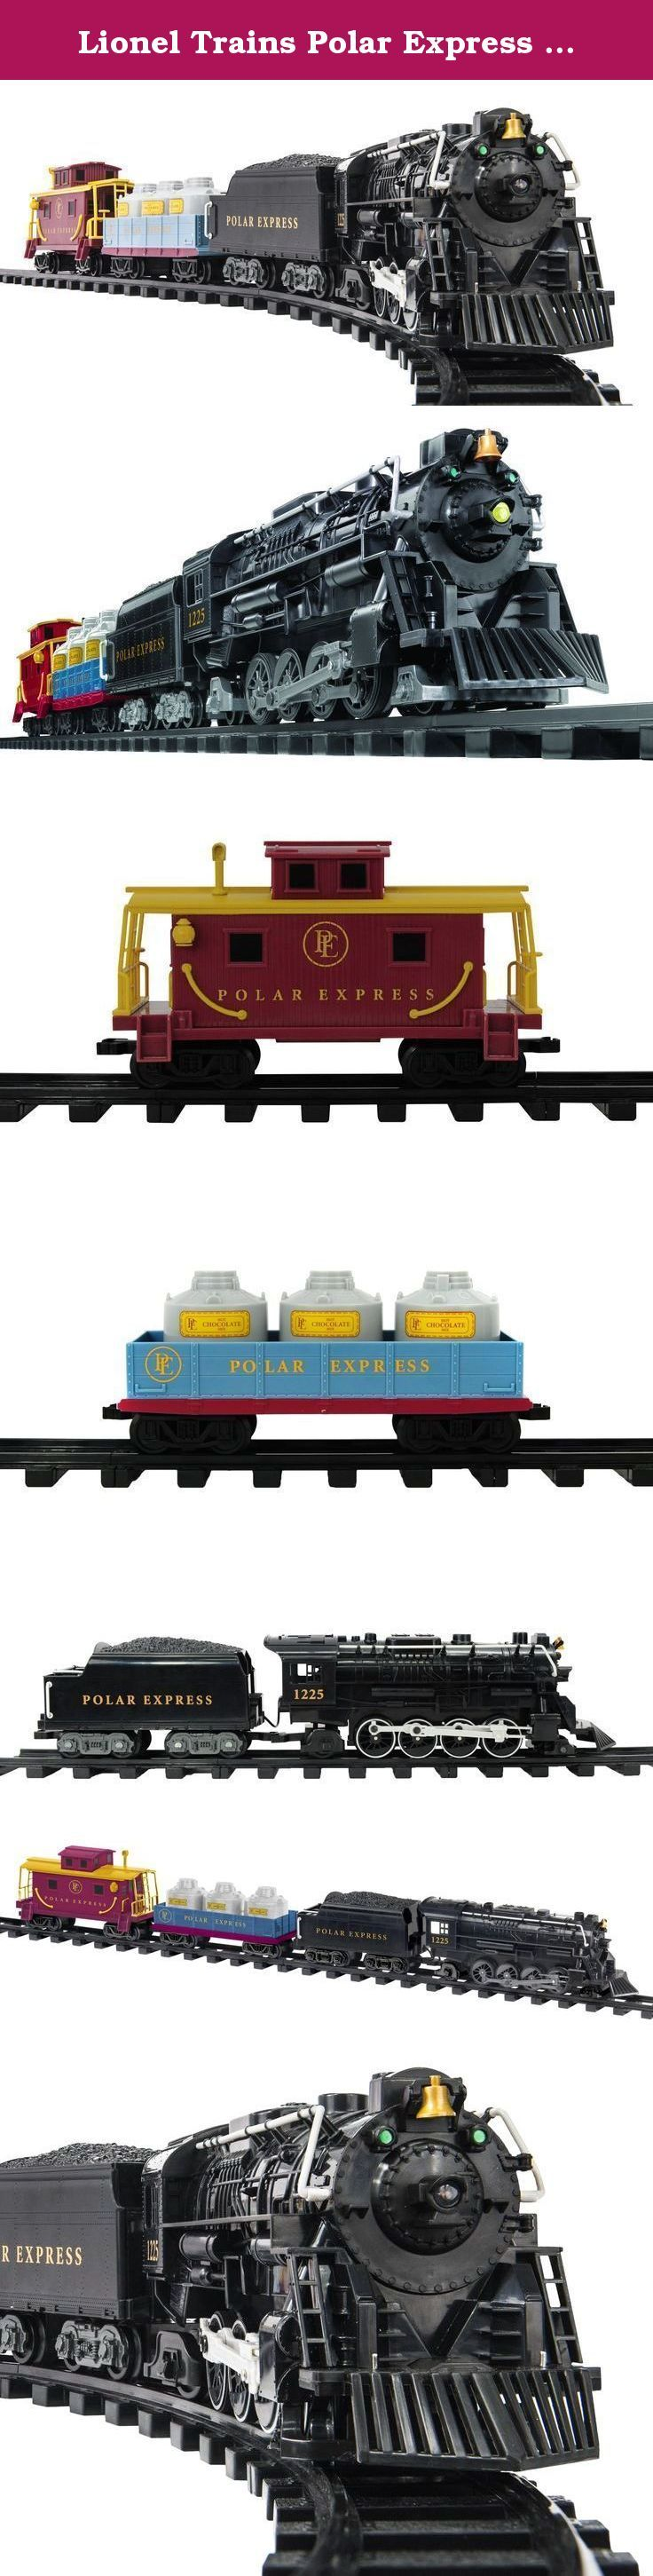 Lionel Trains Polar Express G-Gauge Freight Train Set. We are welcoming the 10th Anniversary of The Polar Express by expanding our G Gauge Polar Express assortment with our NEW Polar Express G Gauge Freight Set. Not only does this set have superior craftsmanship and irresistible charm, it features a steam locomotive and tender, gondola equipped with plenty of hot chocolate for The Polar Express passengers and cupola caboose. This is the perfect set to add to your current G Gauge…